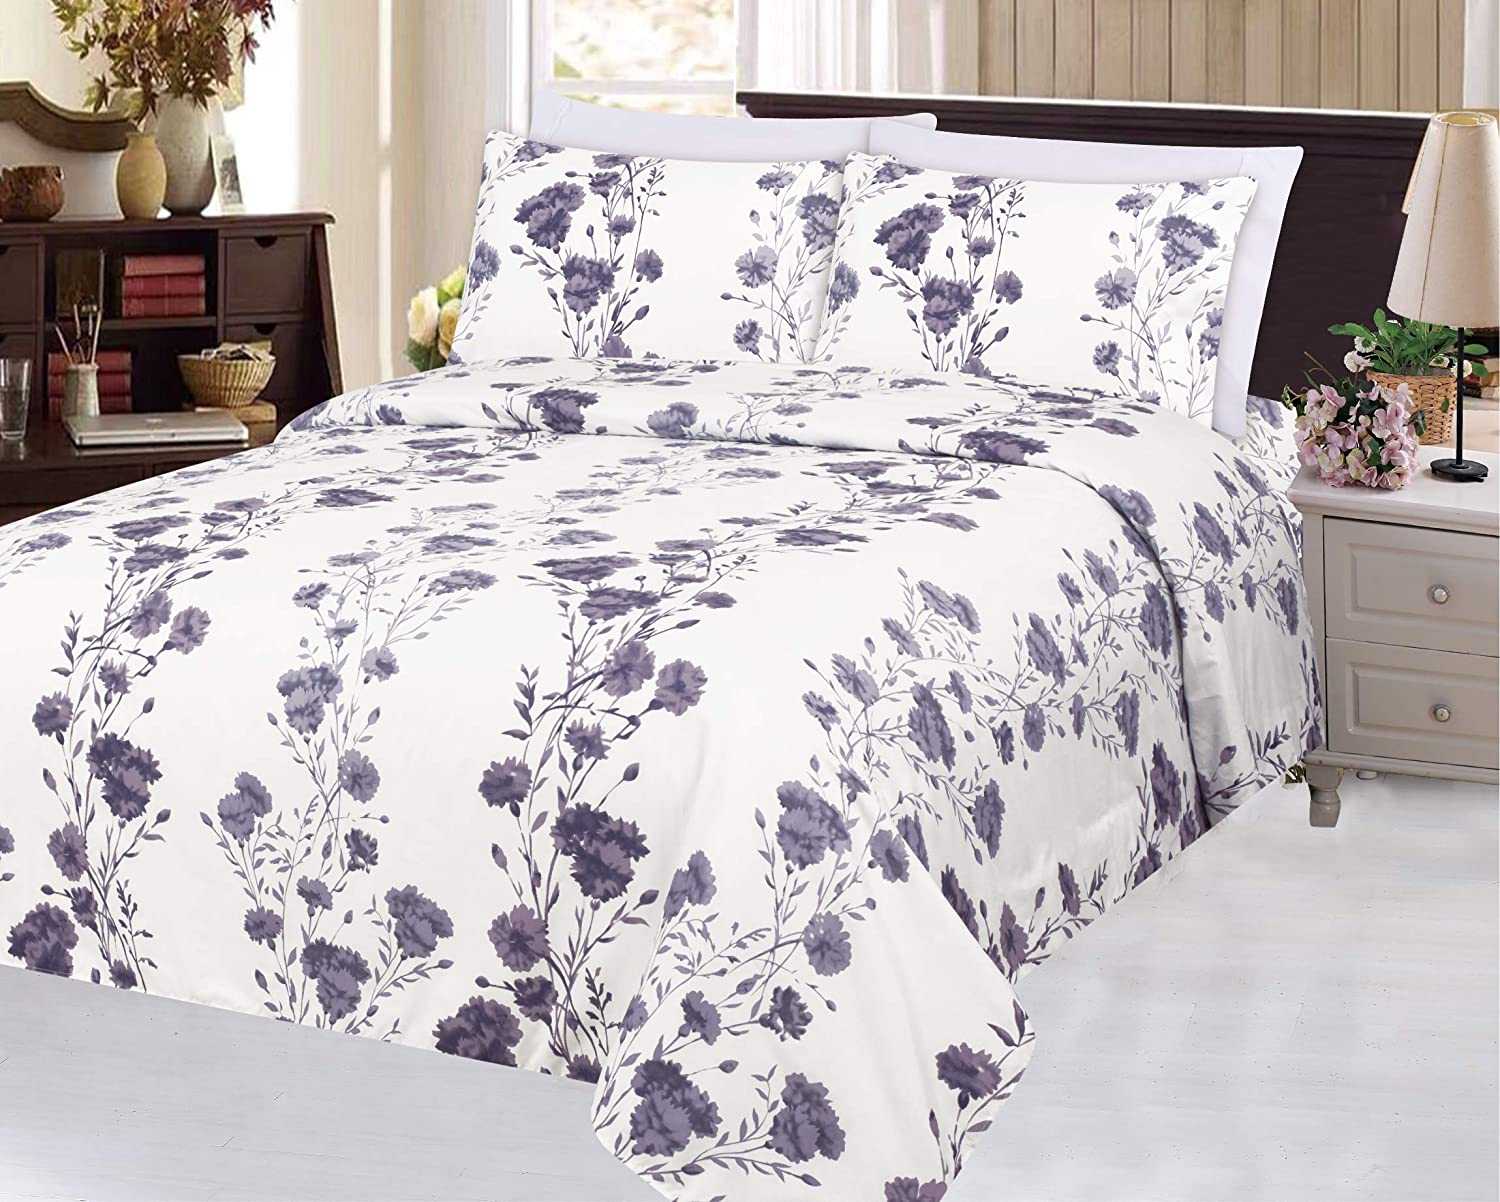 Blue Ivory Color Double//Full Size Blue Chrysanthemum Flower Pattern Bamboo Living Eco Friendly Egyptian Super Soft Bamboo 3 Pieces Duvet Cover Set with 2 Pillow Shams